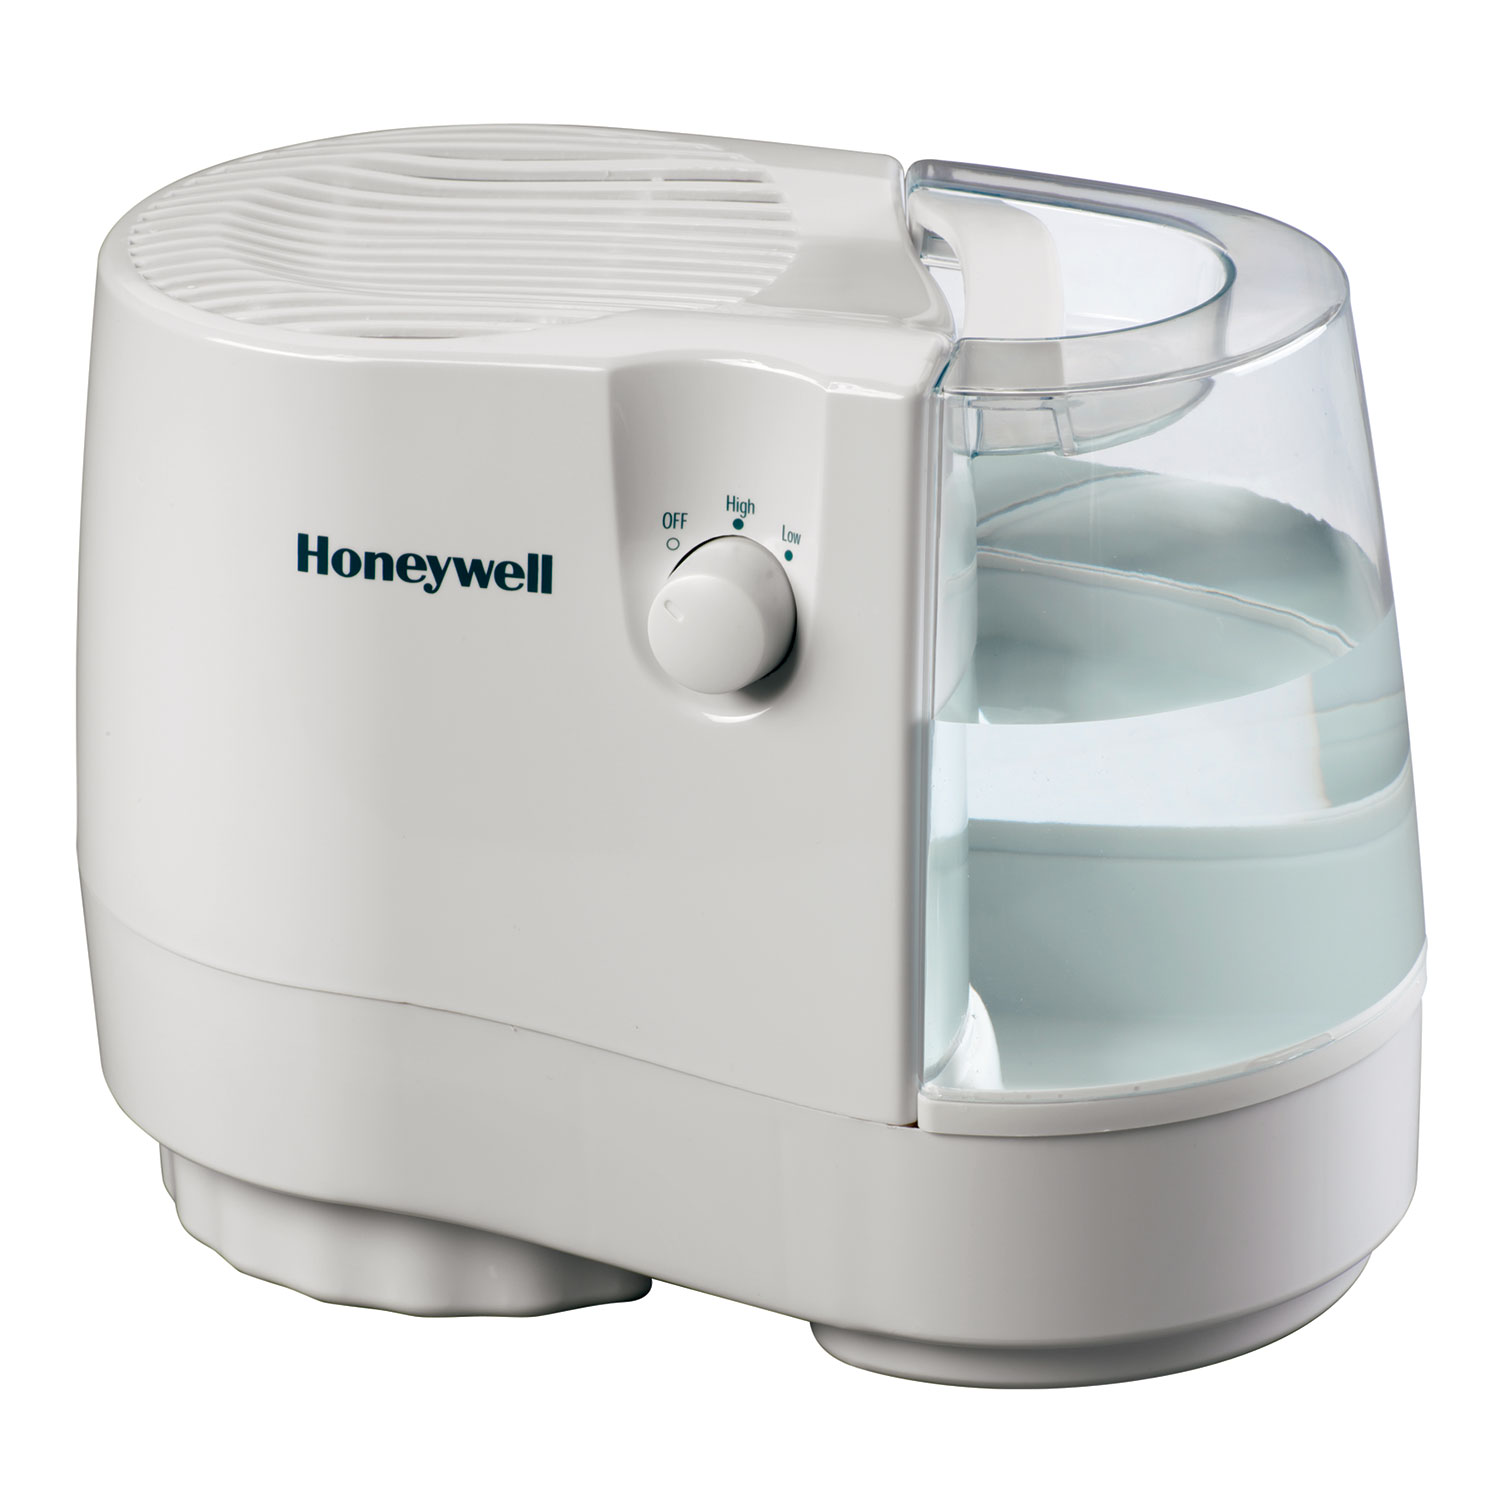 Honeywell Cool Moisture Humidifier In White Hcm 890wtg